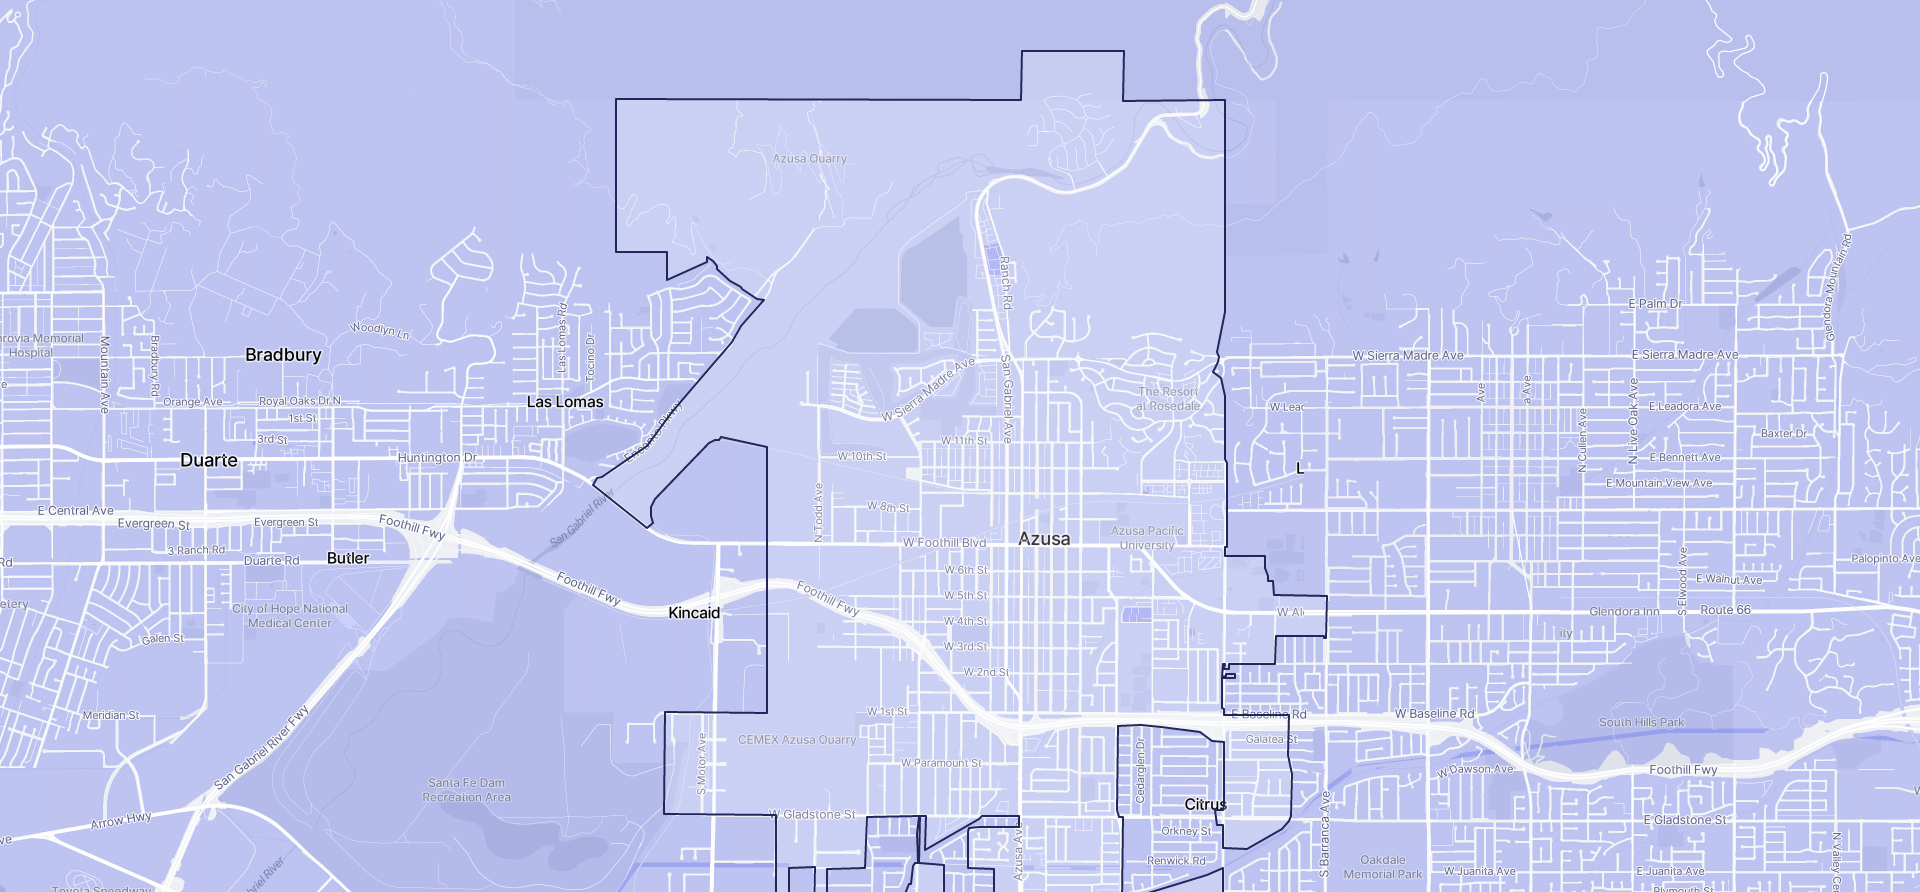 Image of Azusa boundaries on a map.